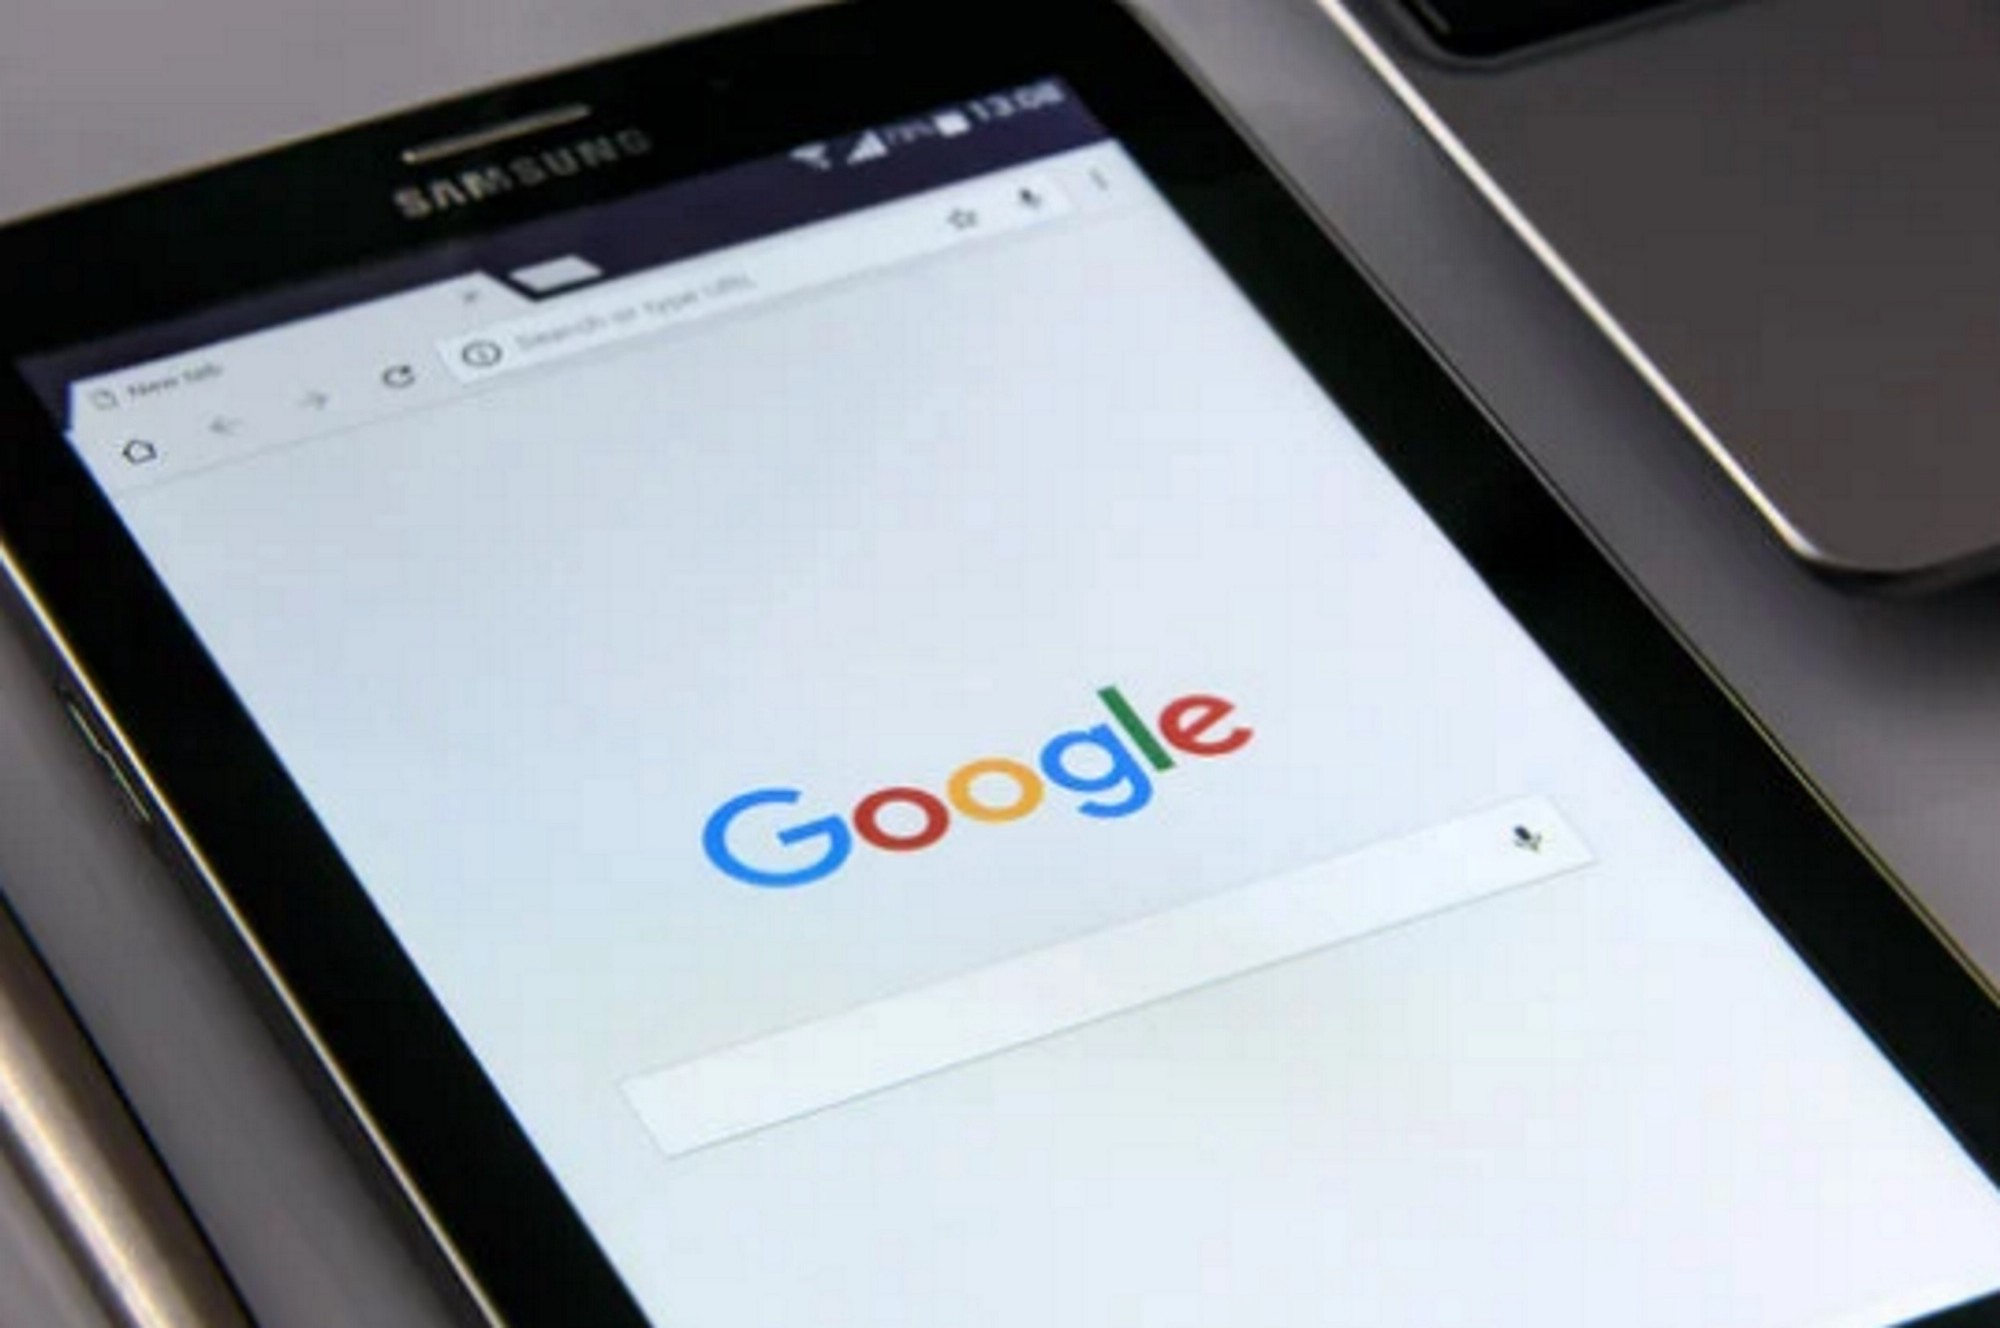 Google browser on phone